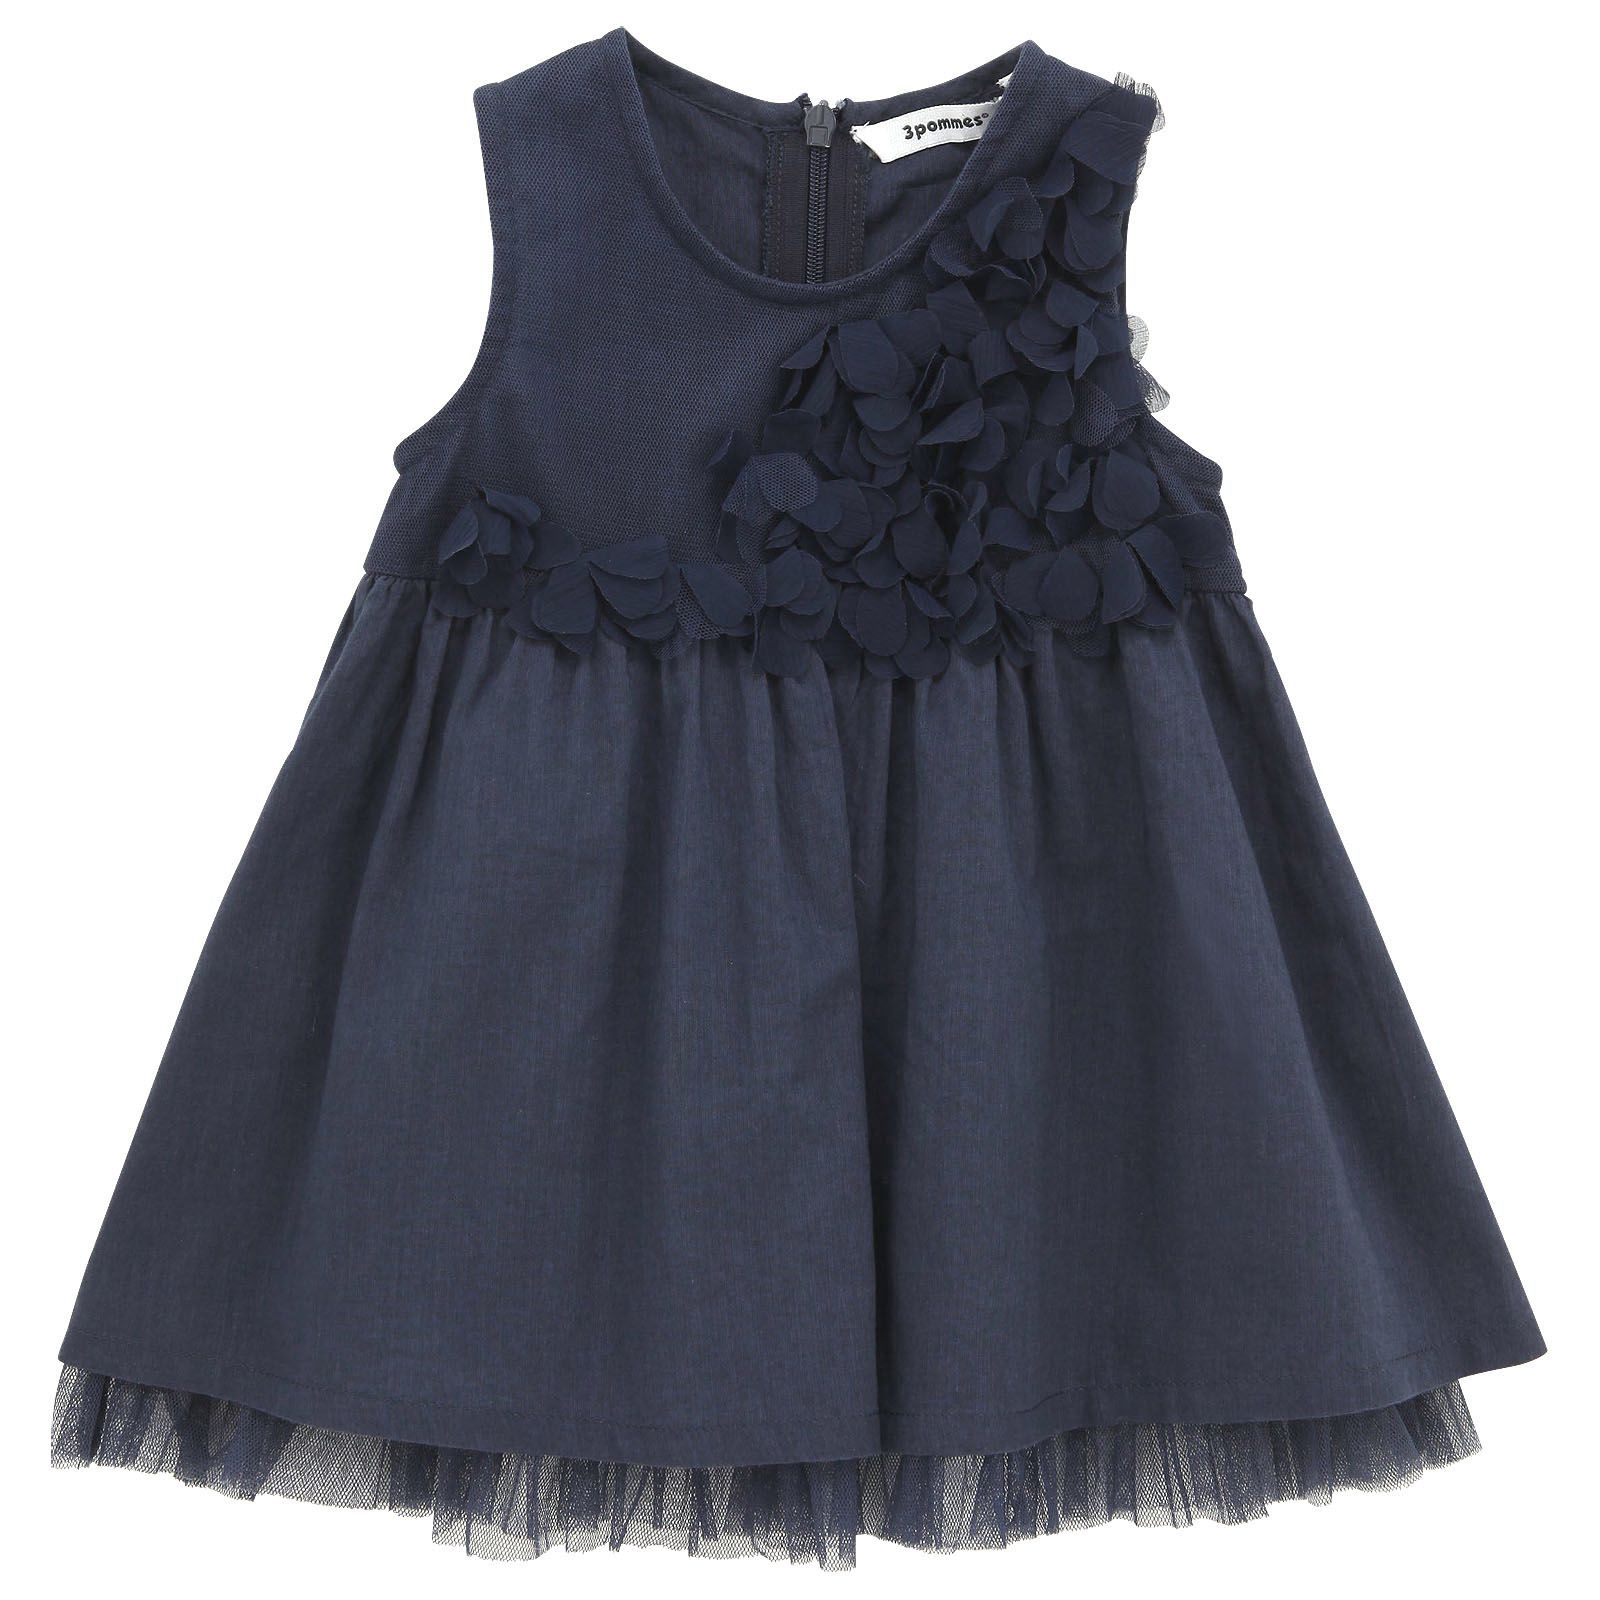 Sleeveless navy blue dress made of tulle and percale. Round neckline. Zip fastening at the back. Appliqué flower petals on the chest.